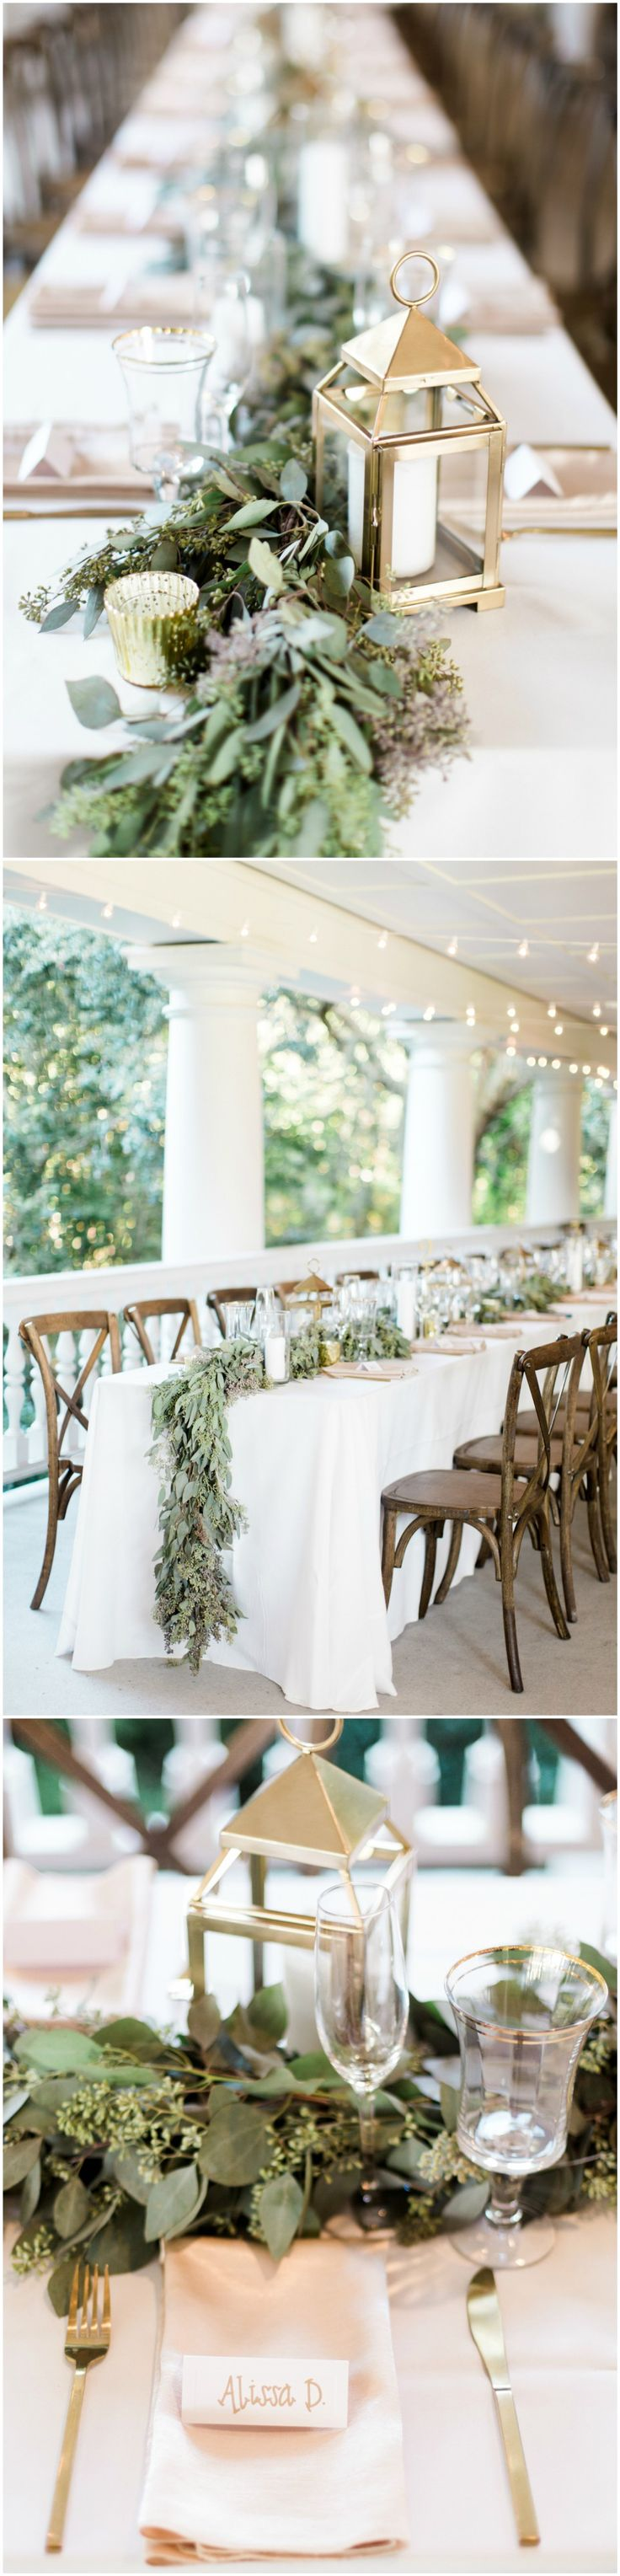 Italian bistro cafe string light rental for wedding reception in - Natural Front Porch F Te At Magnolia Plantation Gardens